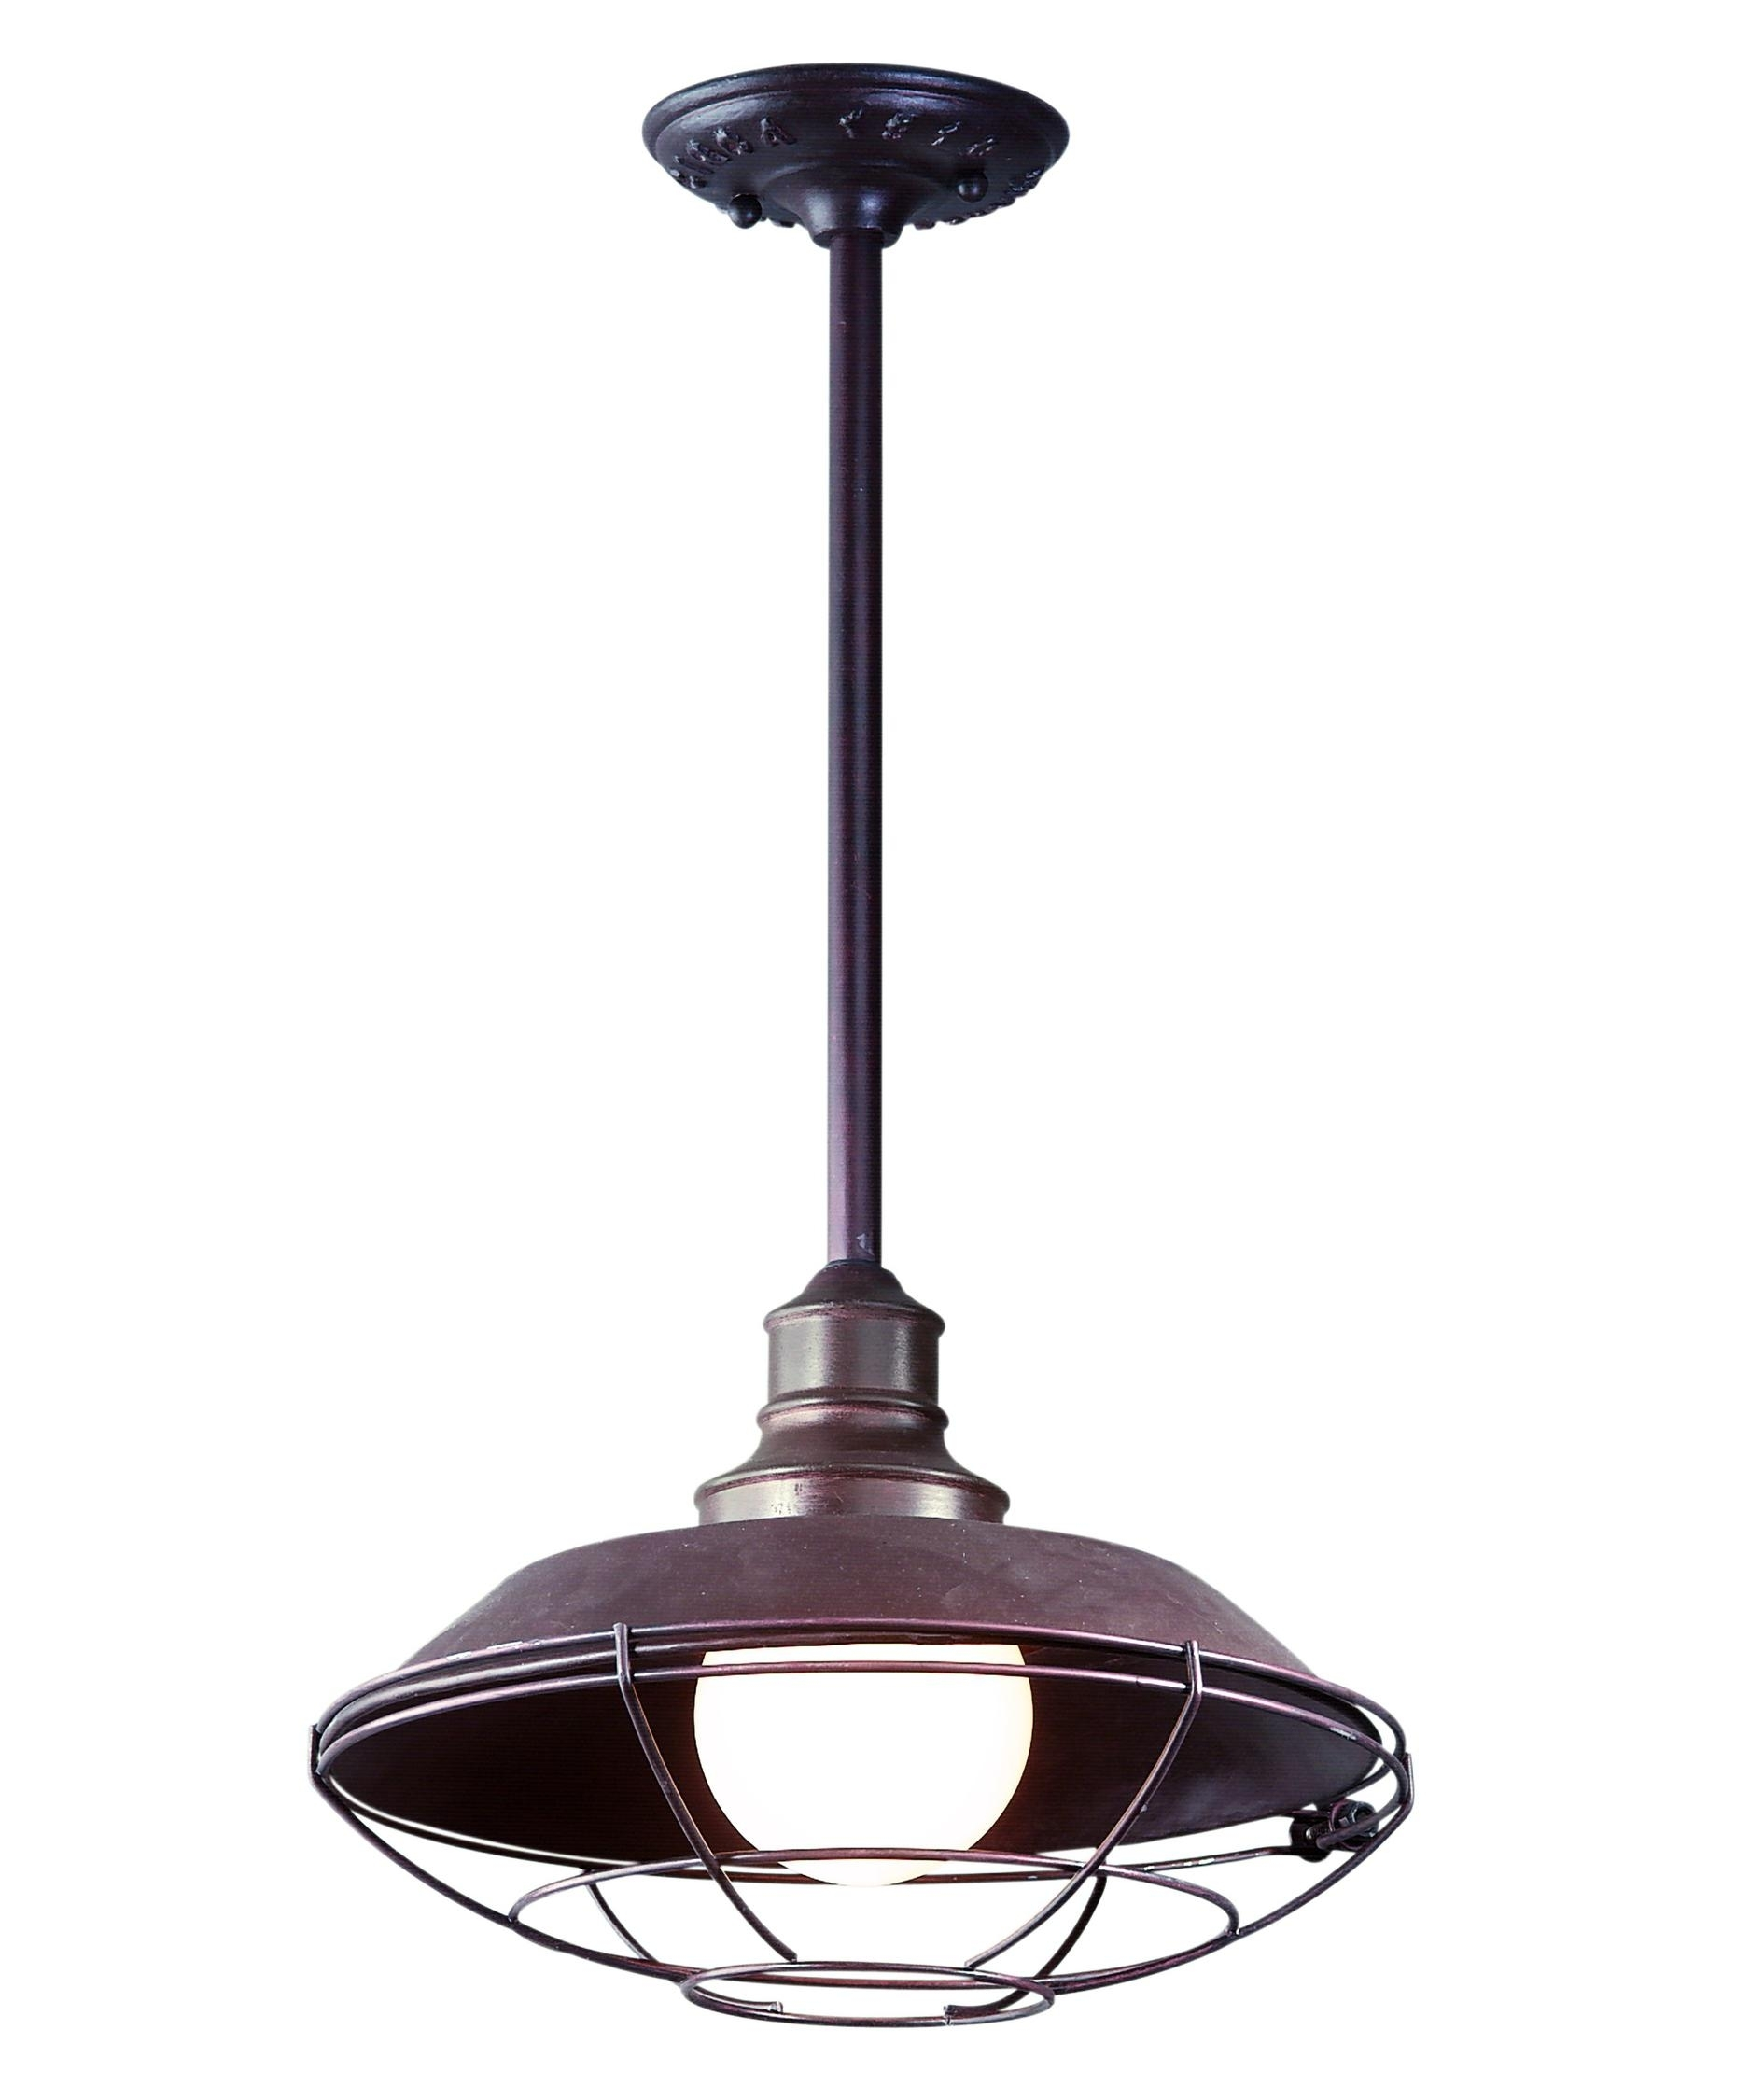 Troy Lighting F9273 Circa 1910 12 Inch Wide 1 Light Outdoor Hanging Within Outdoor Hanging Ceiling Lights (View 2 of 15)